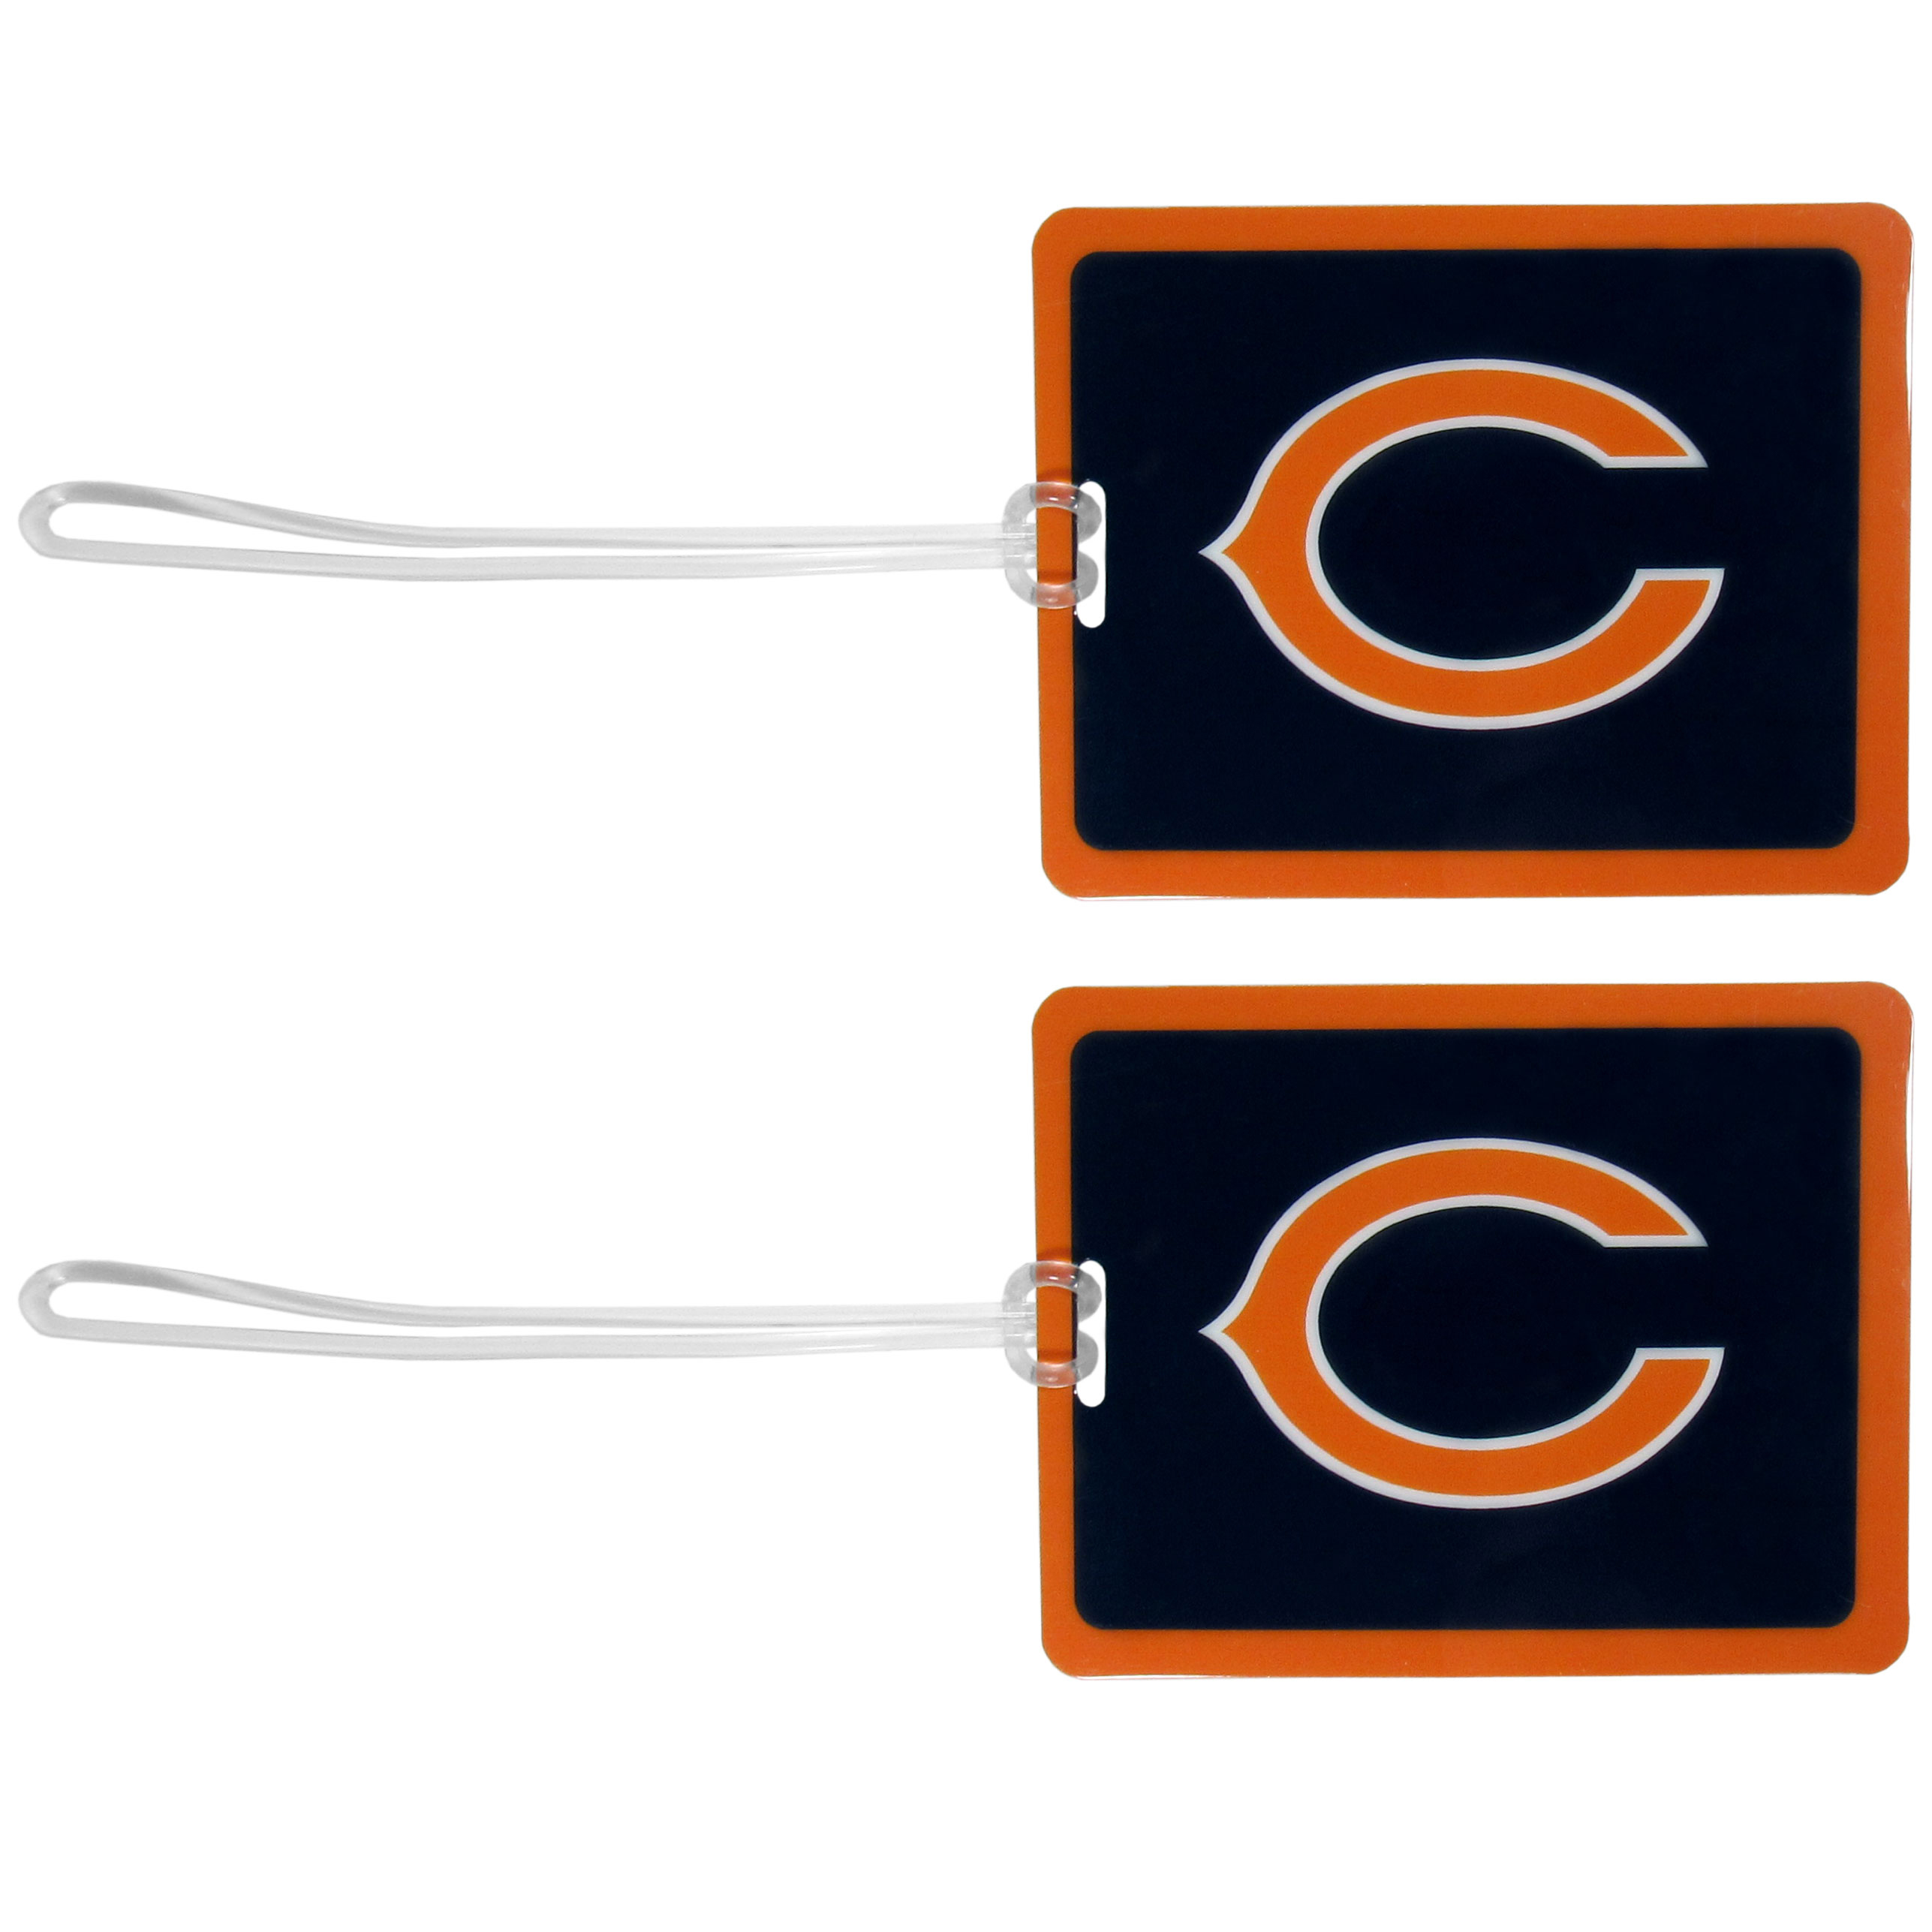 Chicago Bears Vinyl Luggage Tag, 2pk - Tired of trying to spot your suitcase or bag in a sea of luggage? Try our large and colorful Chicago Bears luggage tags. The tag is 4x3 inches and has a 5 inch cord to attach it easily to your bags, backpacks or luggage. The front of the tag features the team logo in a bright, team colored background and you can write you name, address and phone number on the back of the tag.